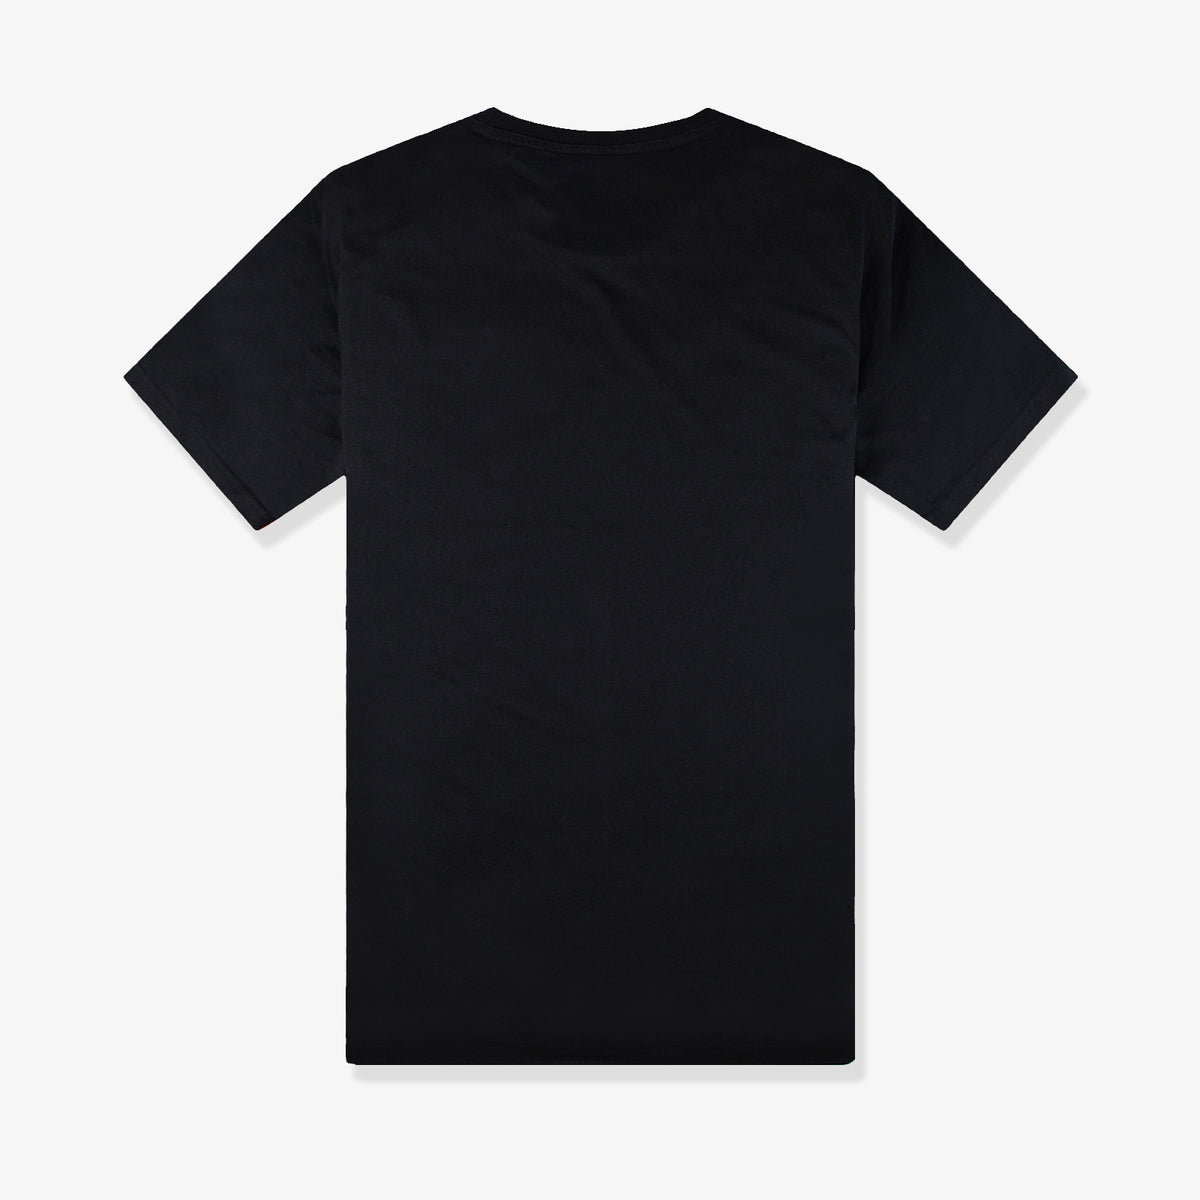 Adidas D.O.N. Issue #2 Logo T-Shirt - Black